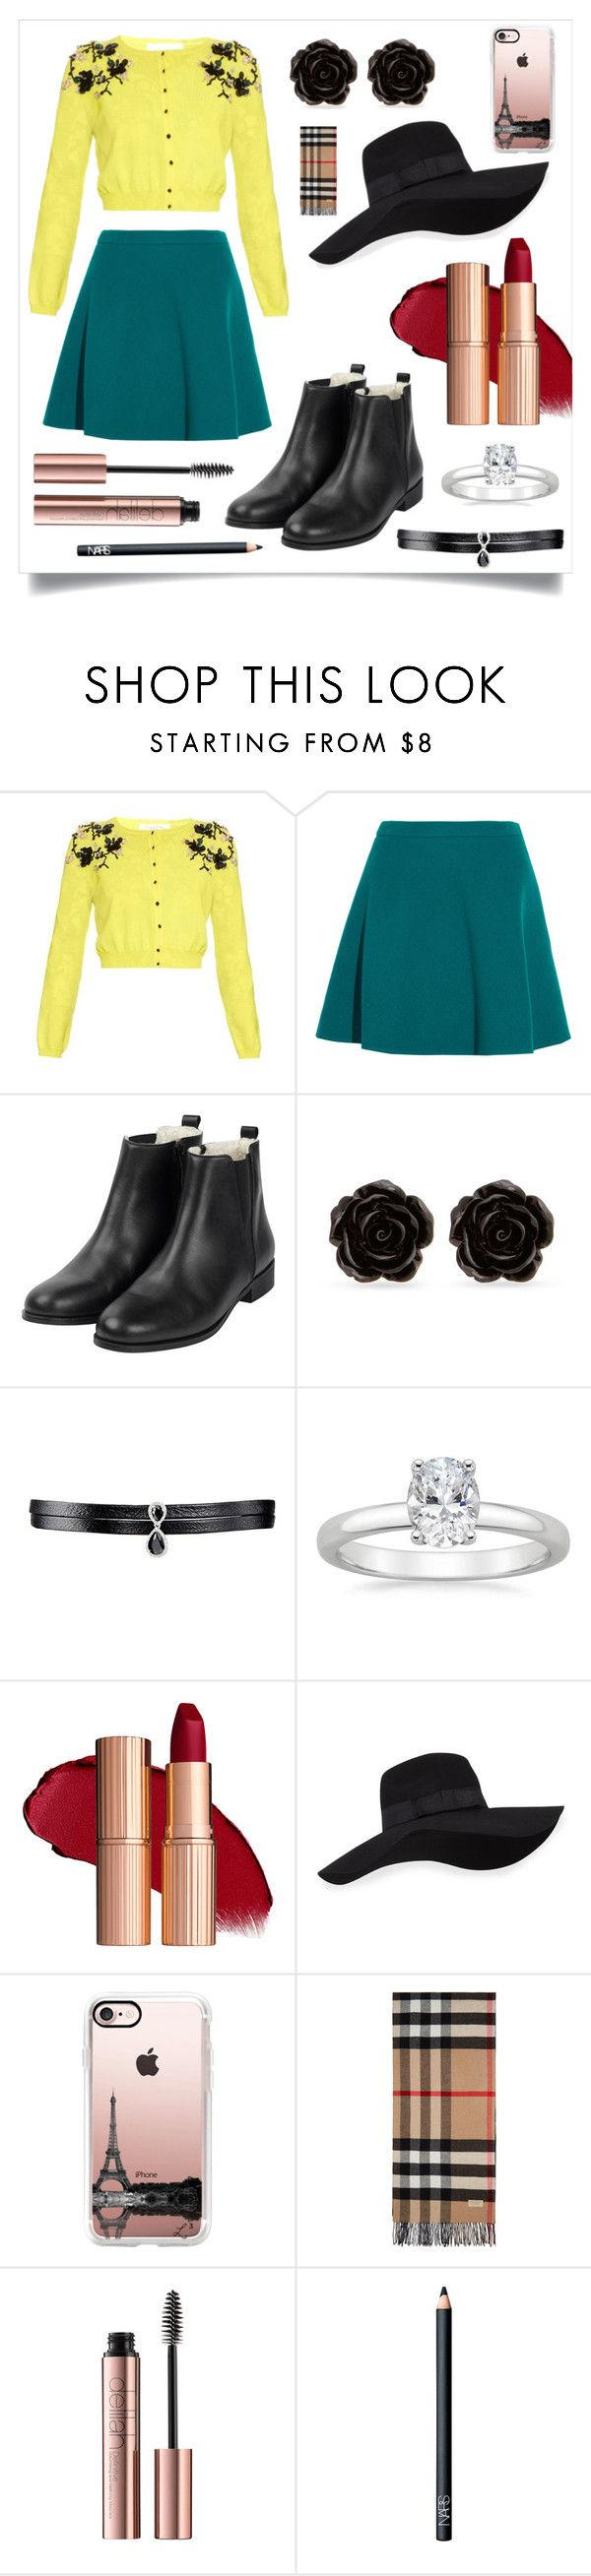 """""""Perfect Sense of Style"""" by i-love-tennis ❤ liked on Polyvore featuring Oscar de la Renta, Miu Miu, Erica Lyons, Fallon, San Diego Hat Co., Casetify, Burberry and NARS Cosmetics"""